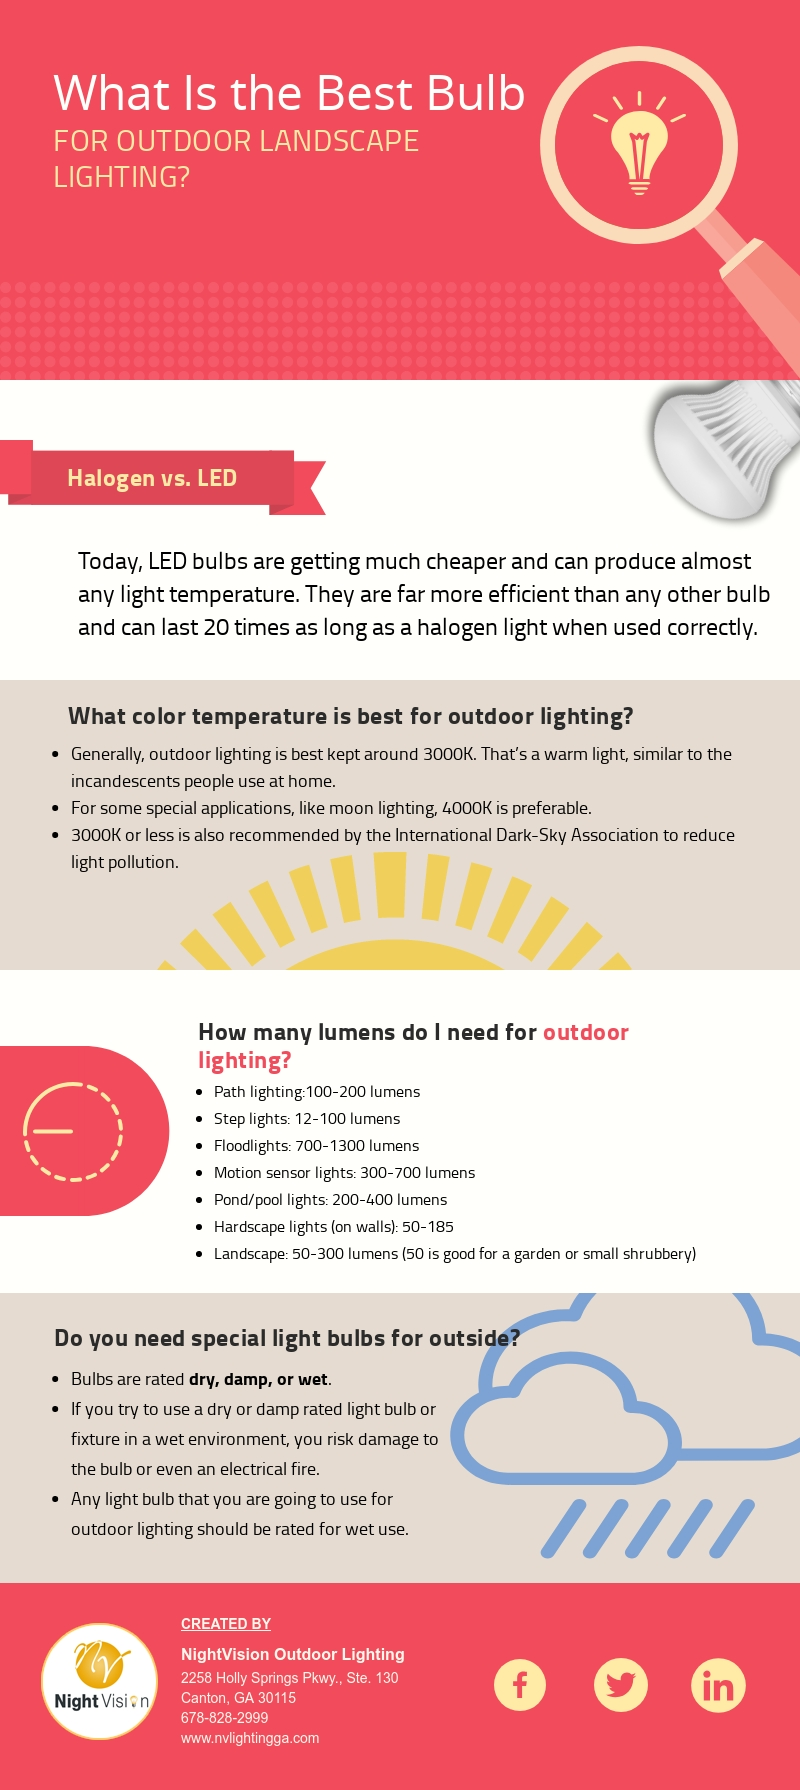 What Is the Best Bulb for Outdoor Landscape Lighting? [infographic]